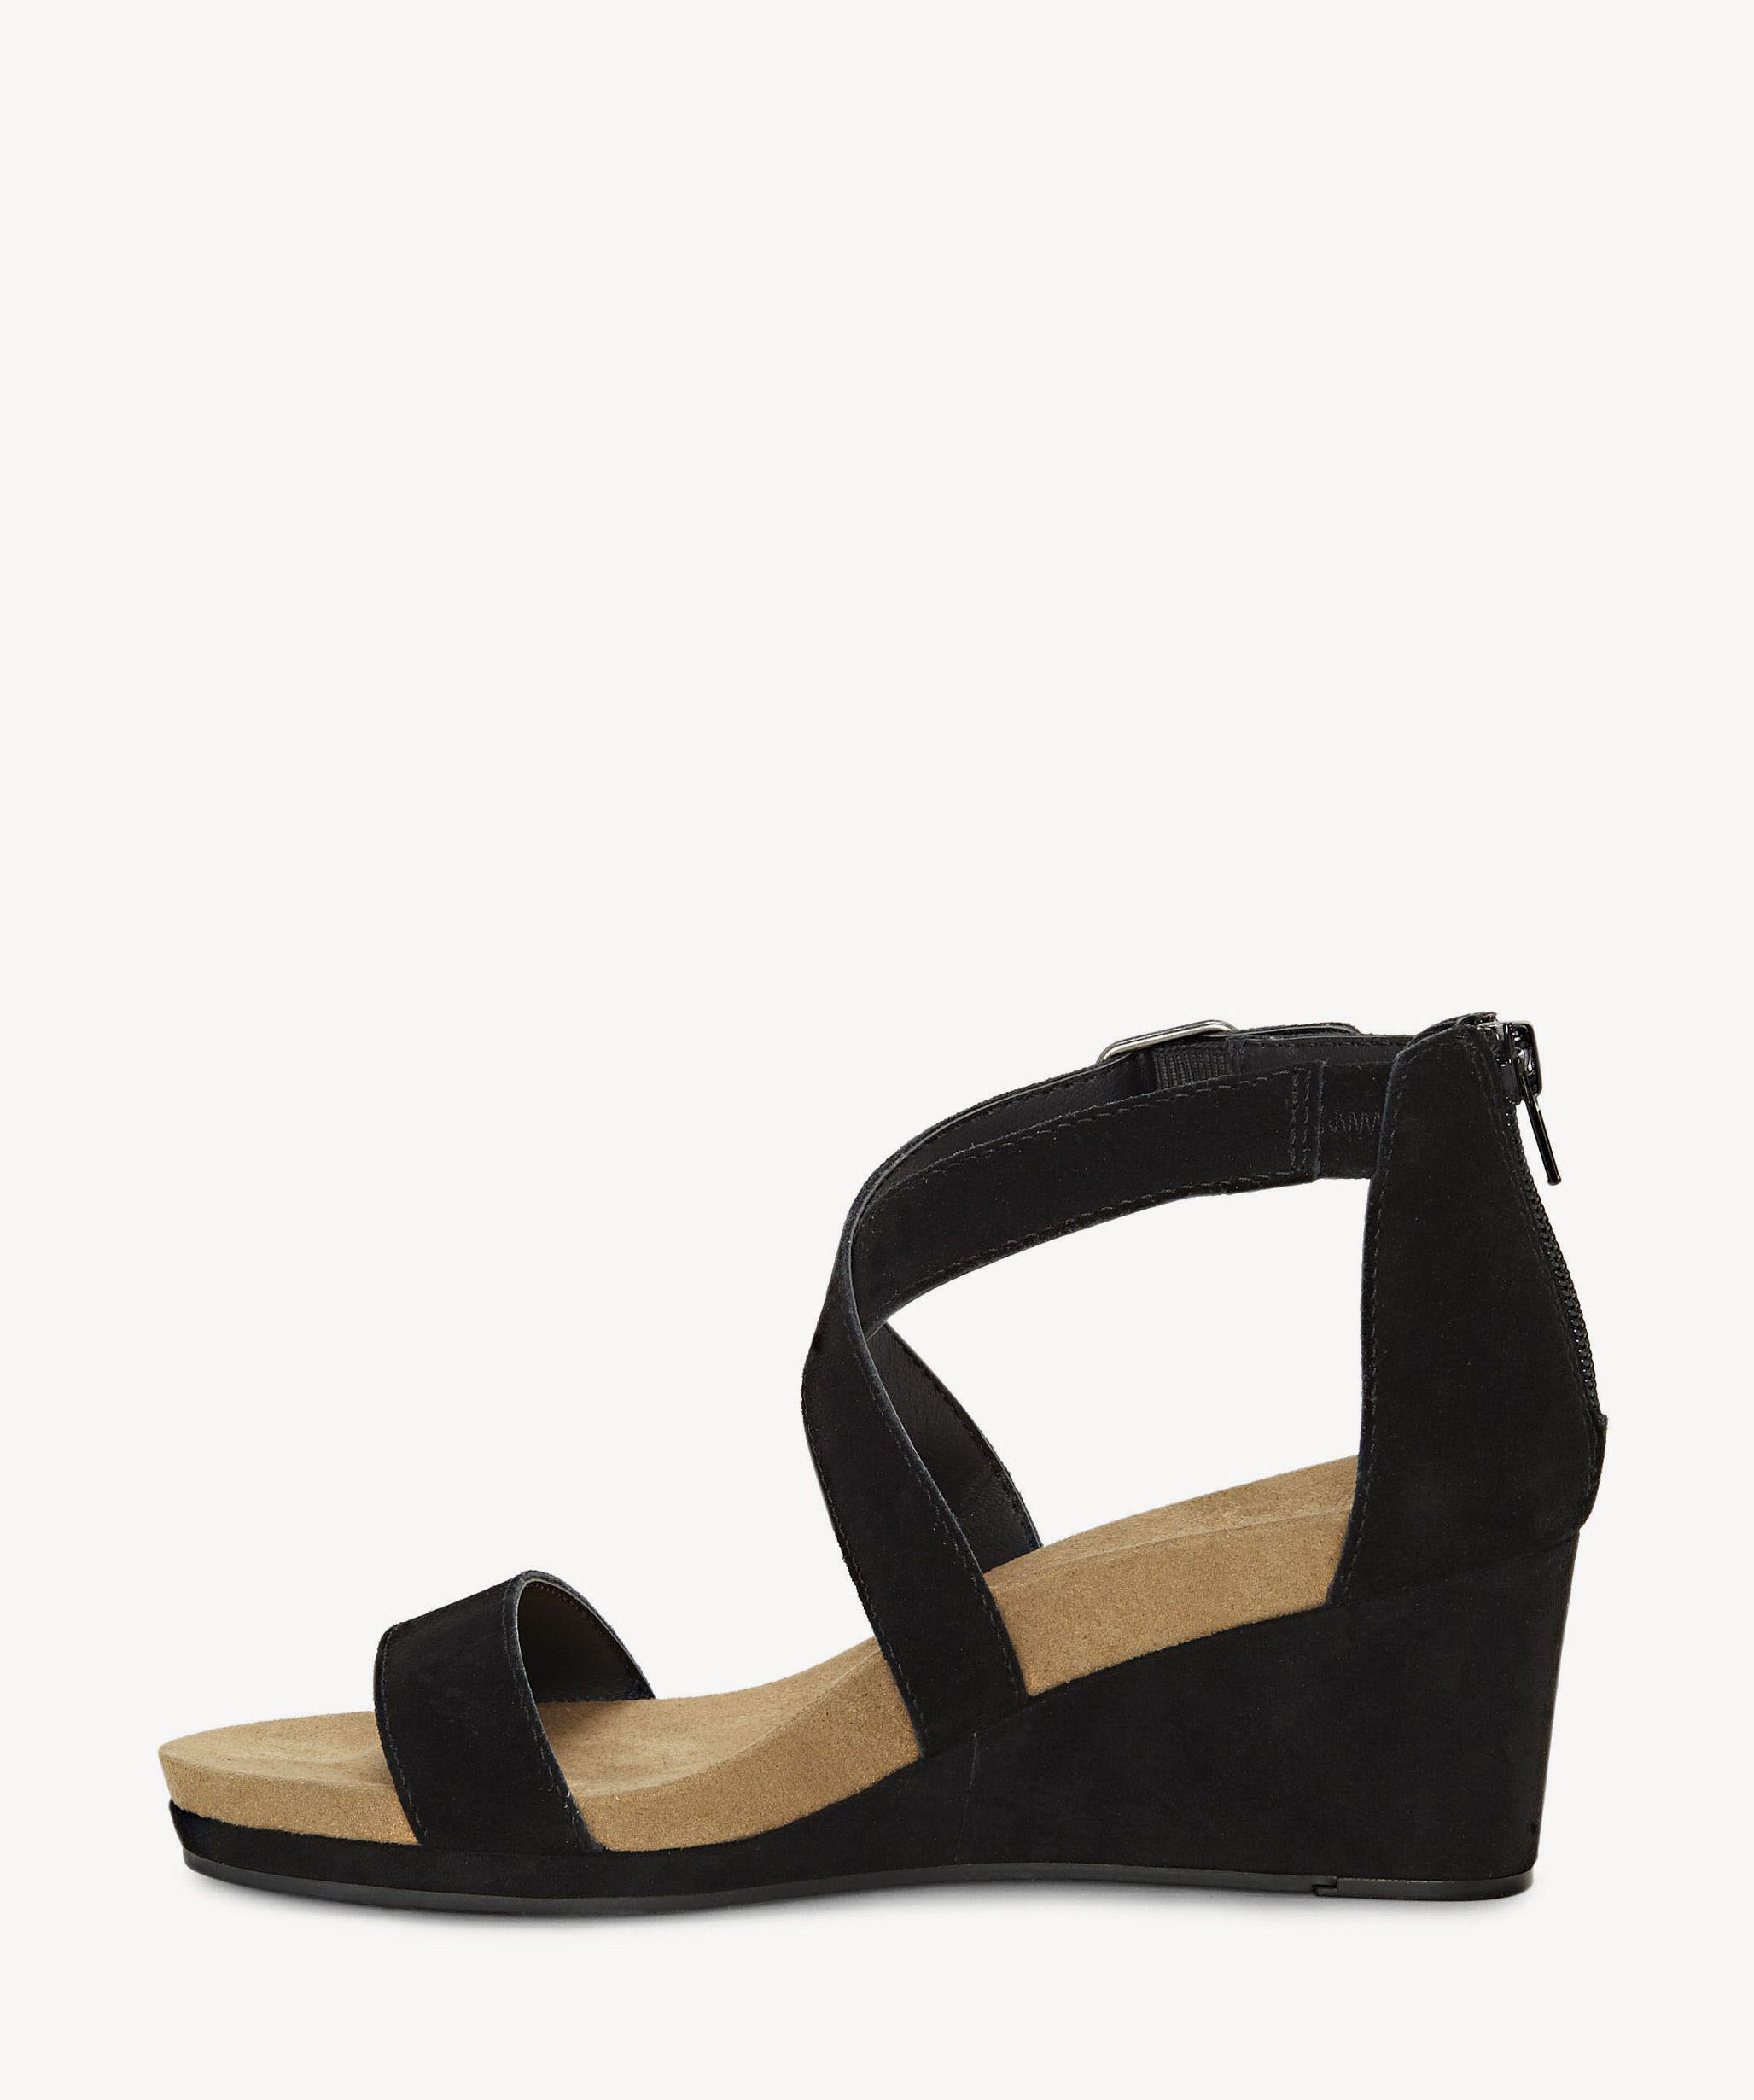 6929f2445397 Lyst - Lucky Brand Kenadee Criss Cross Wedge in Black